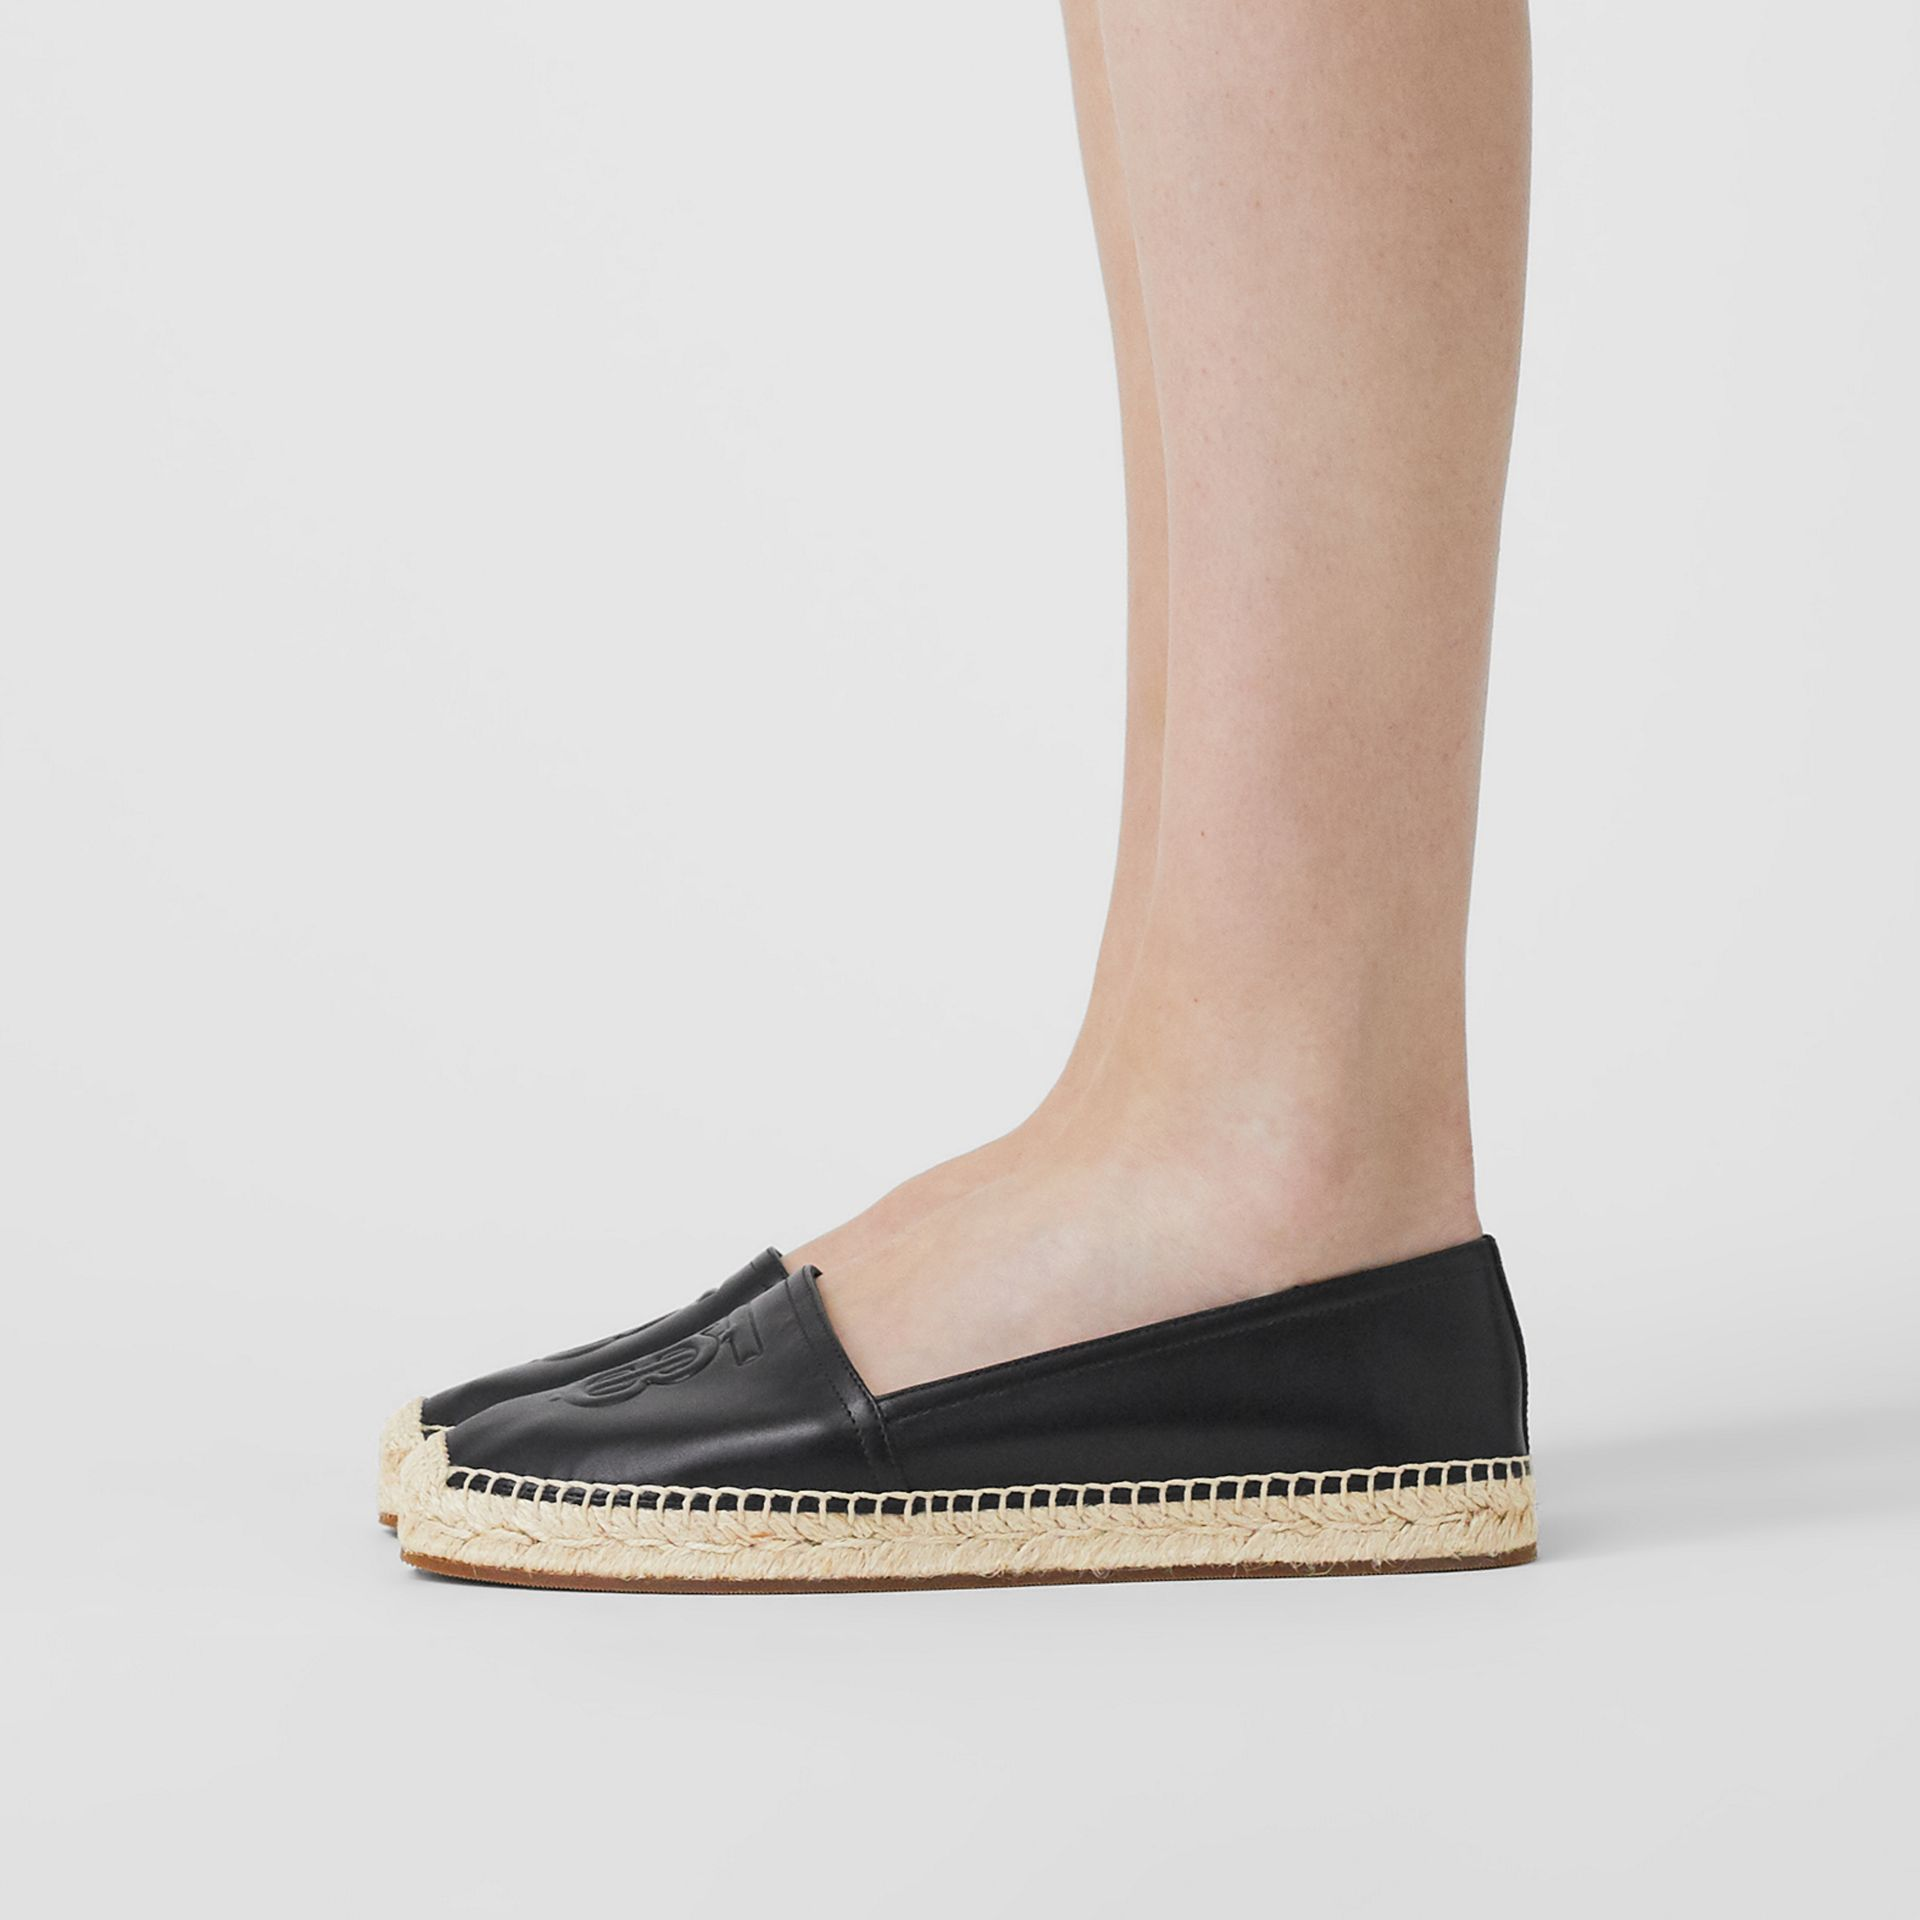 Monogram Motif Leather Espadrilles in Black - Women | Burberry - gallery image 2